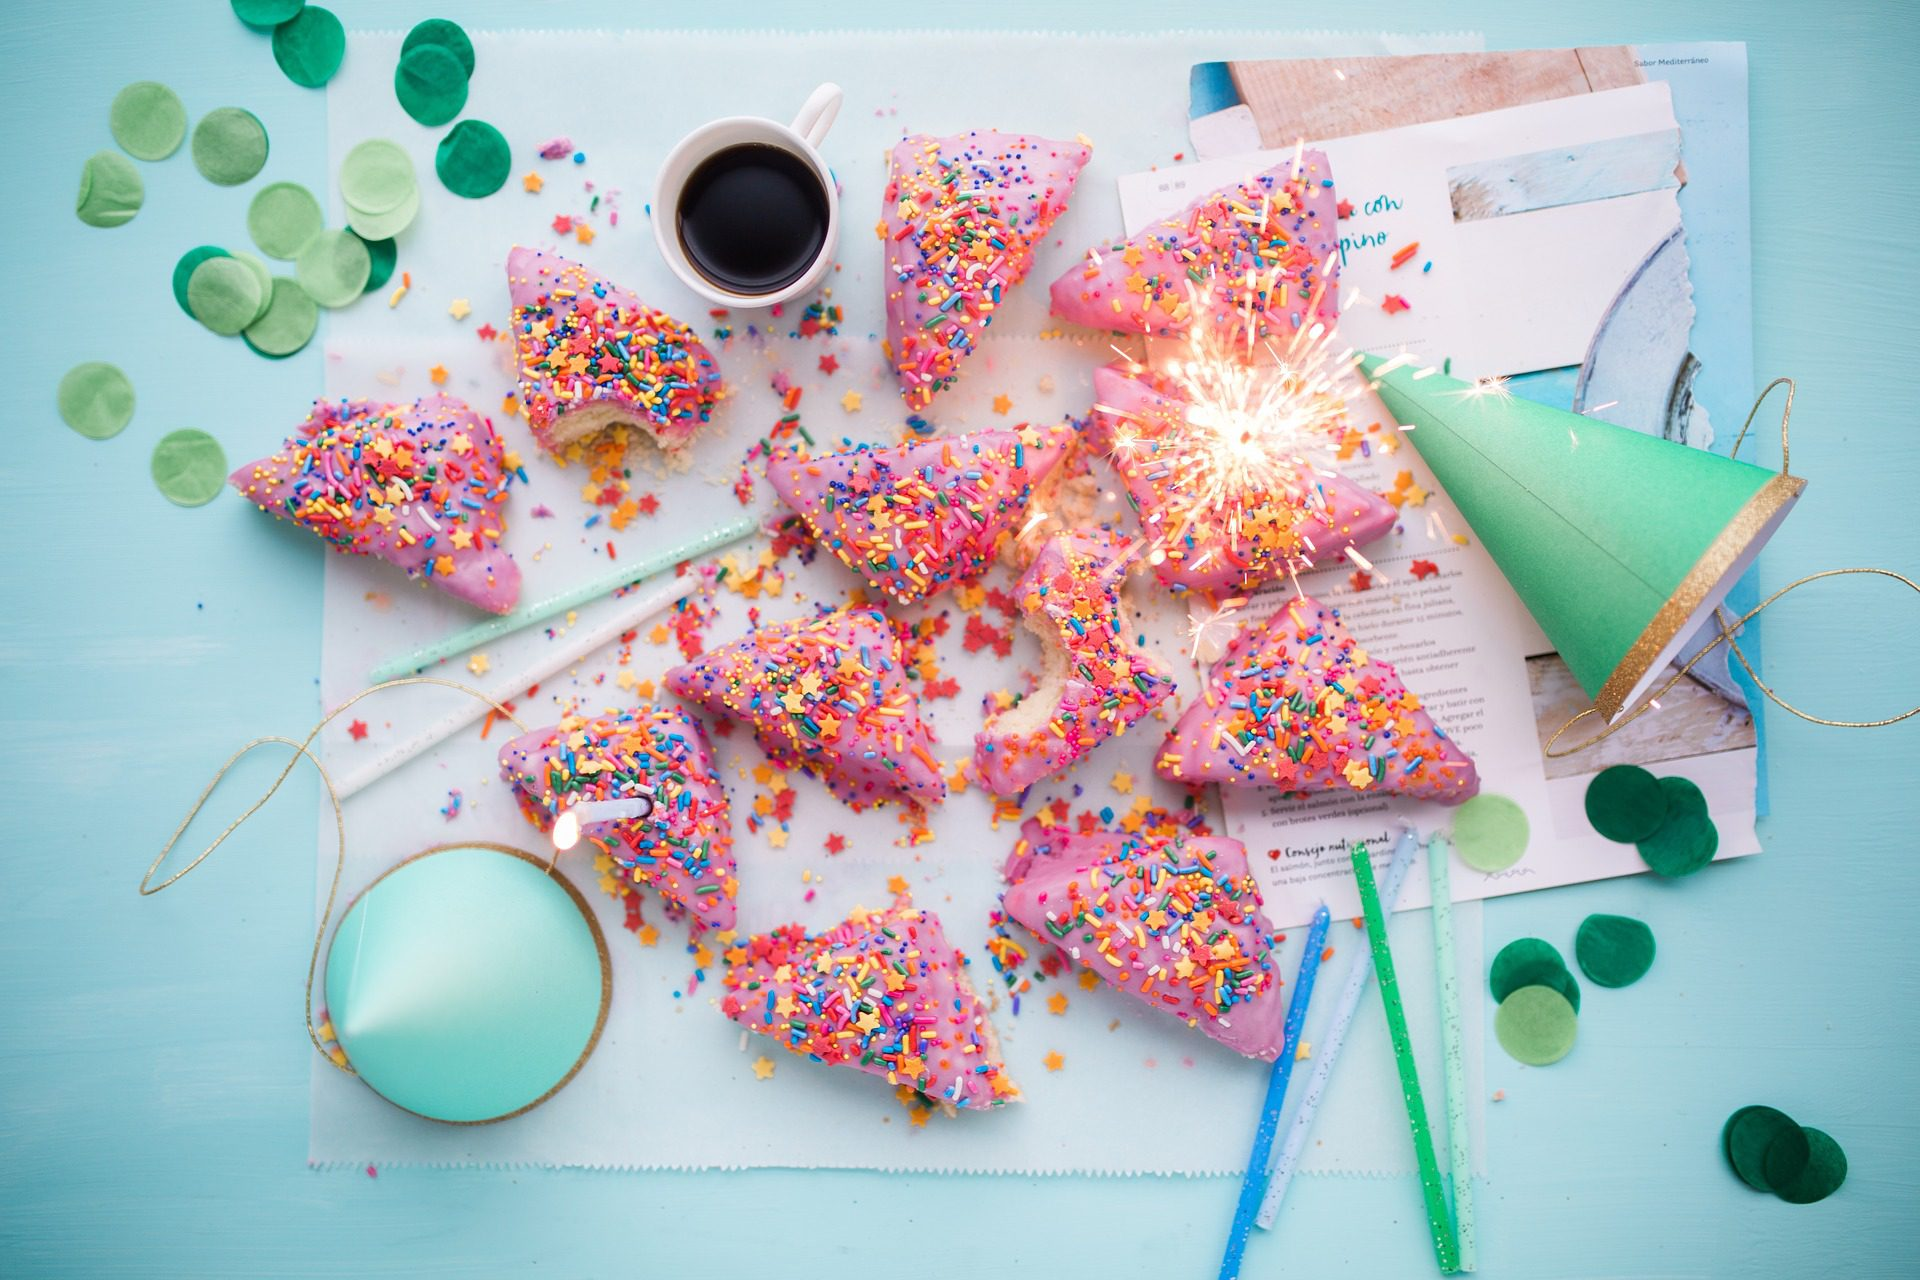 8 Simple Steps for Developing an Awesome Party Plan – Part 2